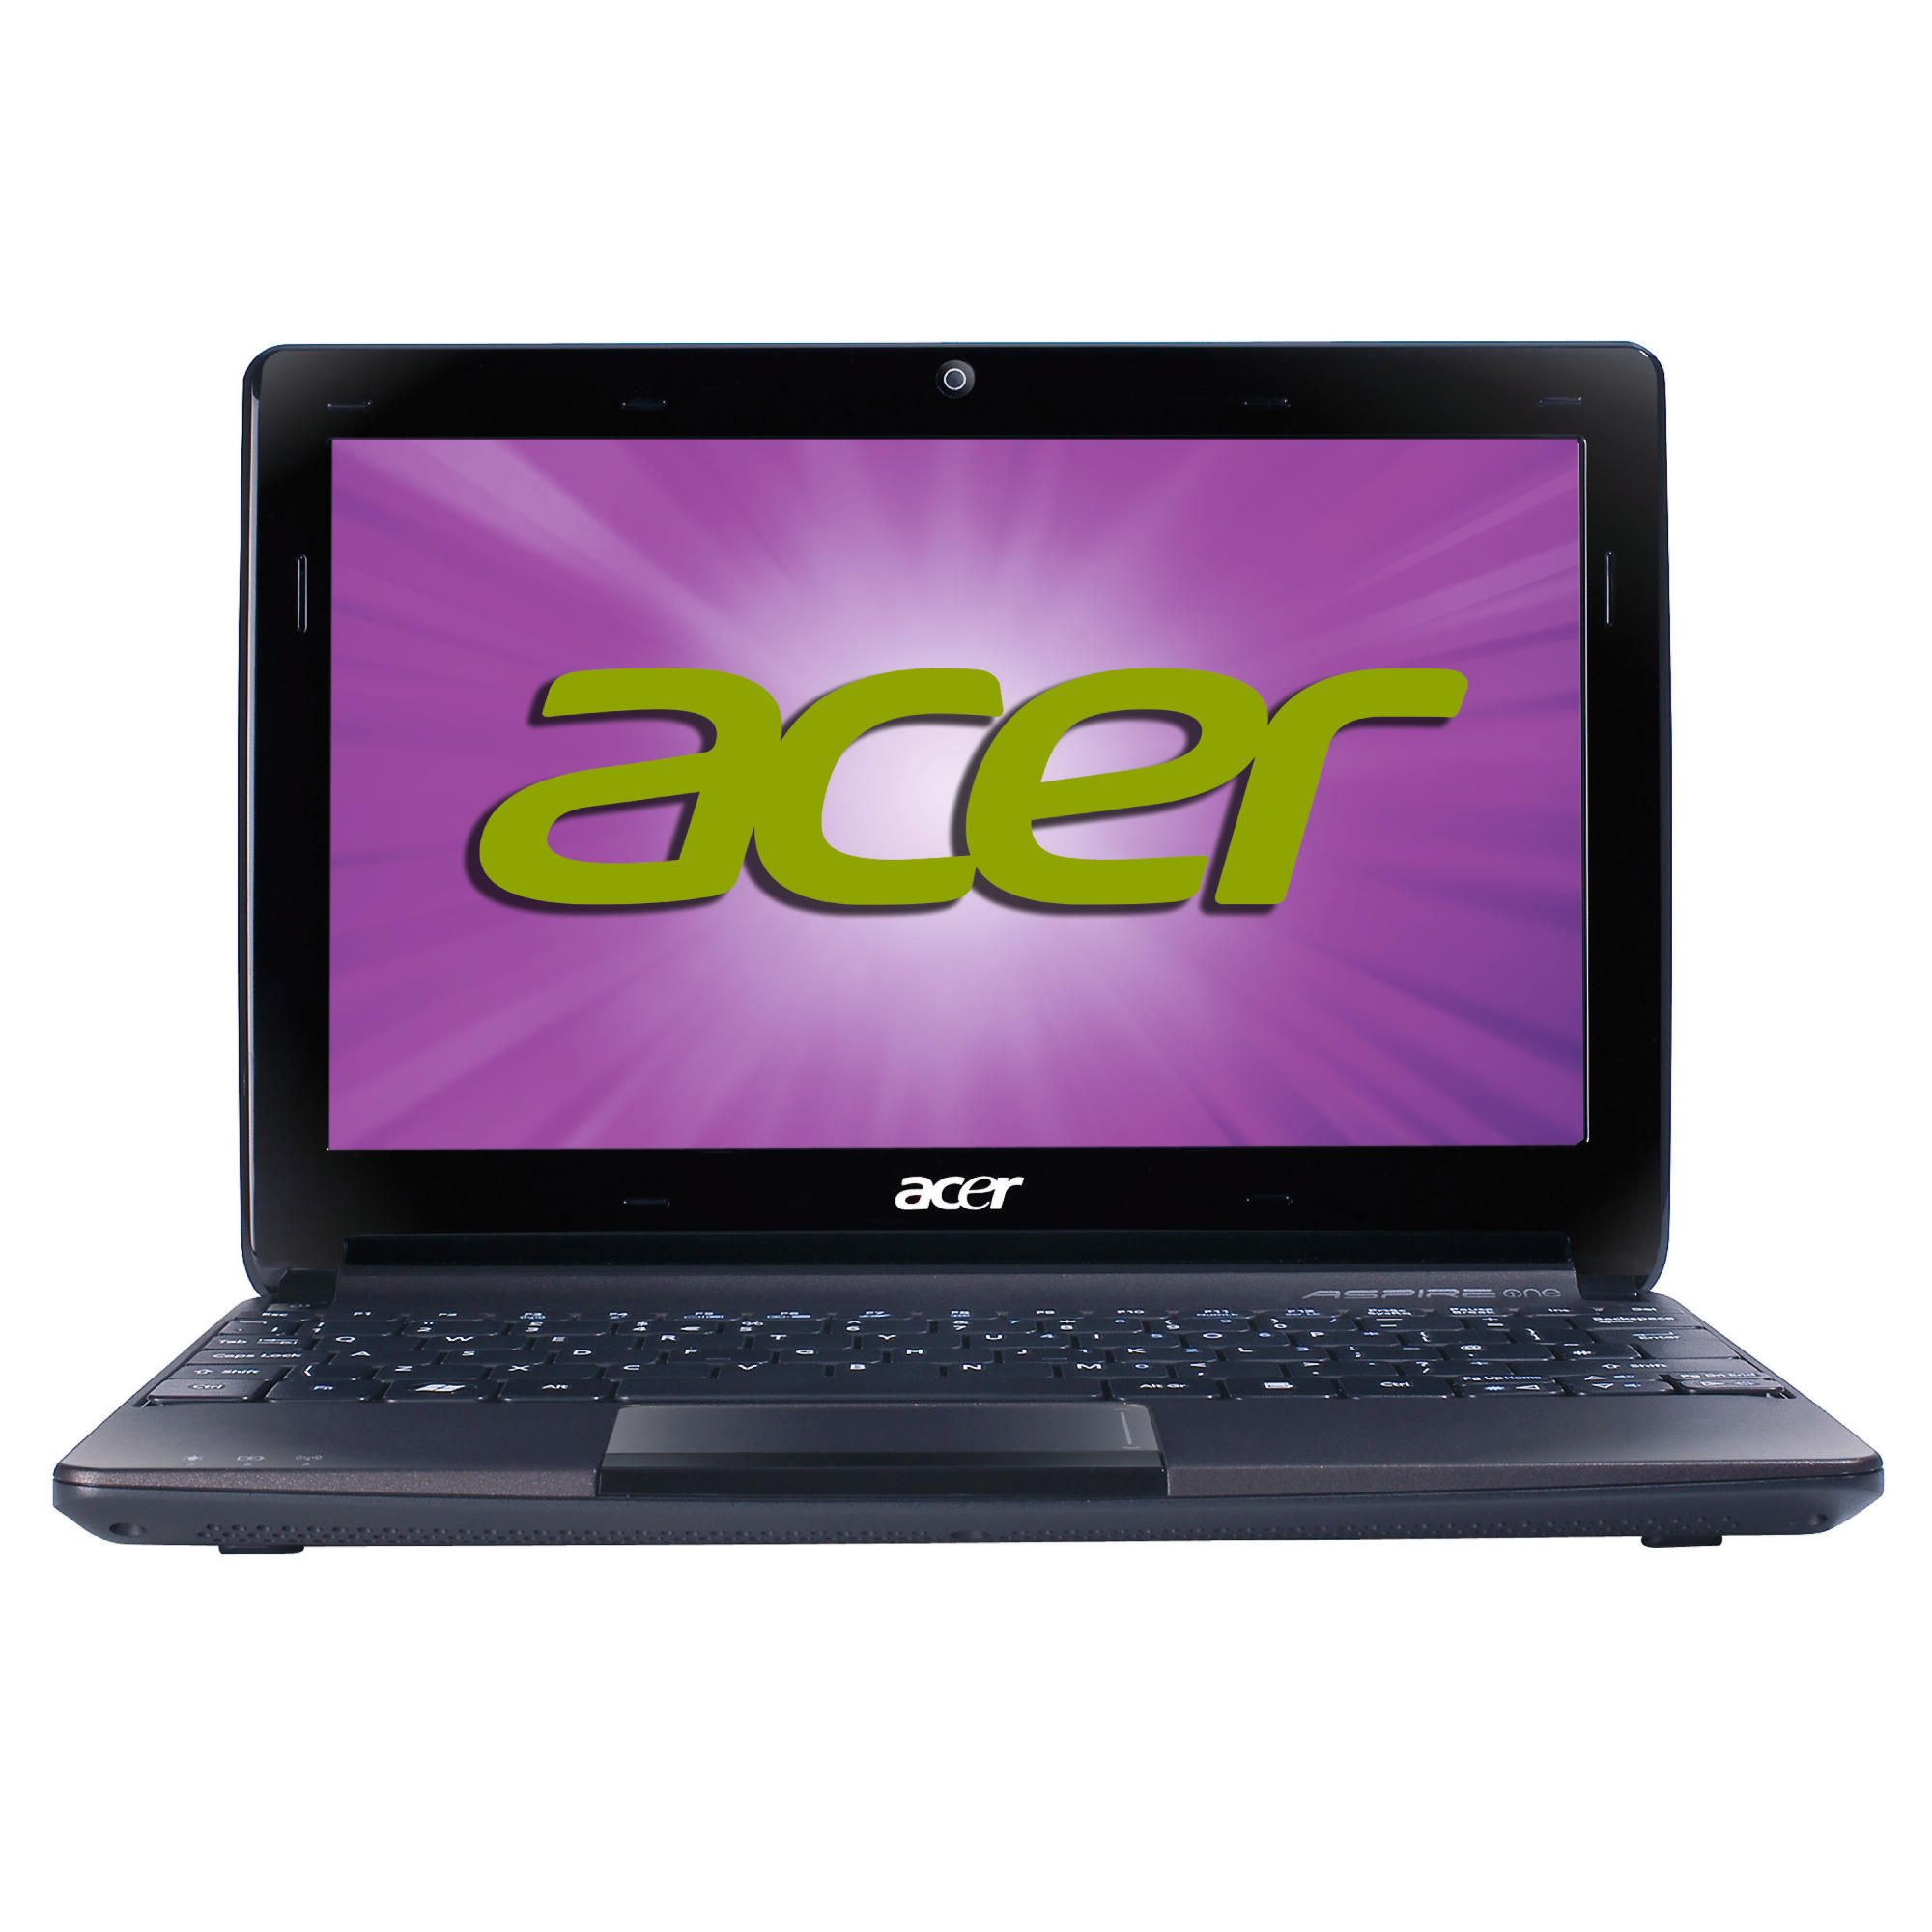 Acer Aspire One D255E 10.1 inch Netbook - Black at Tesco Direct